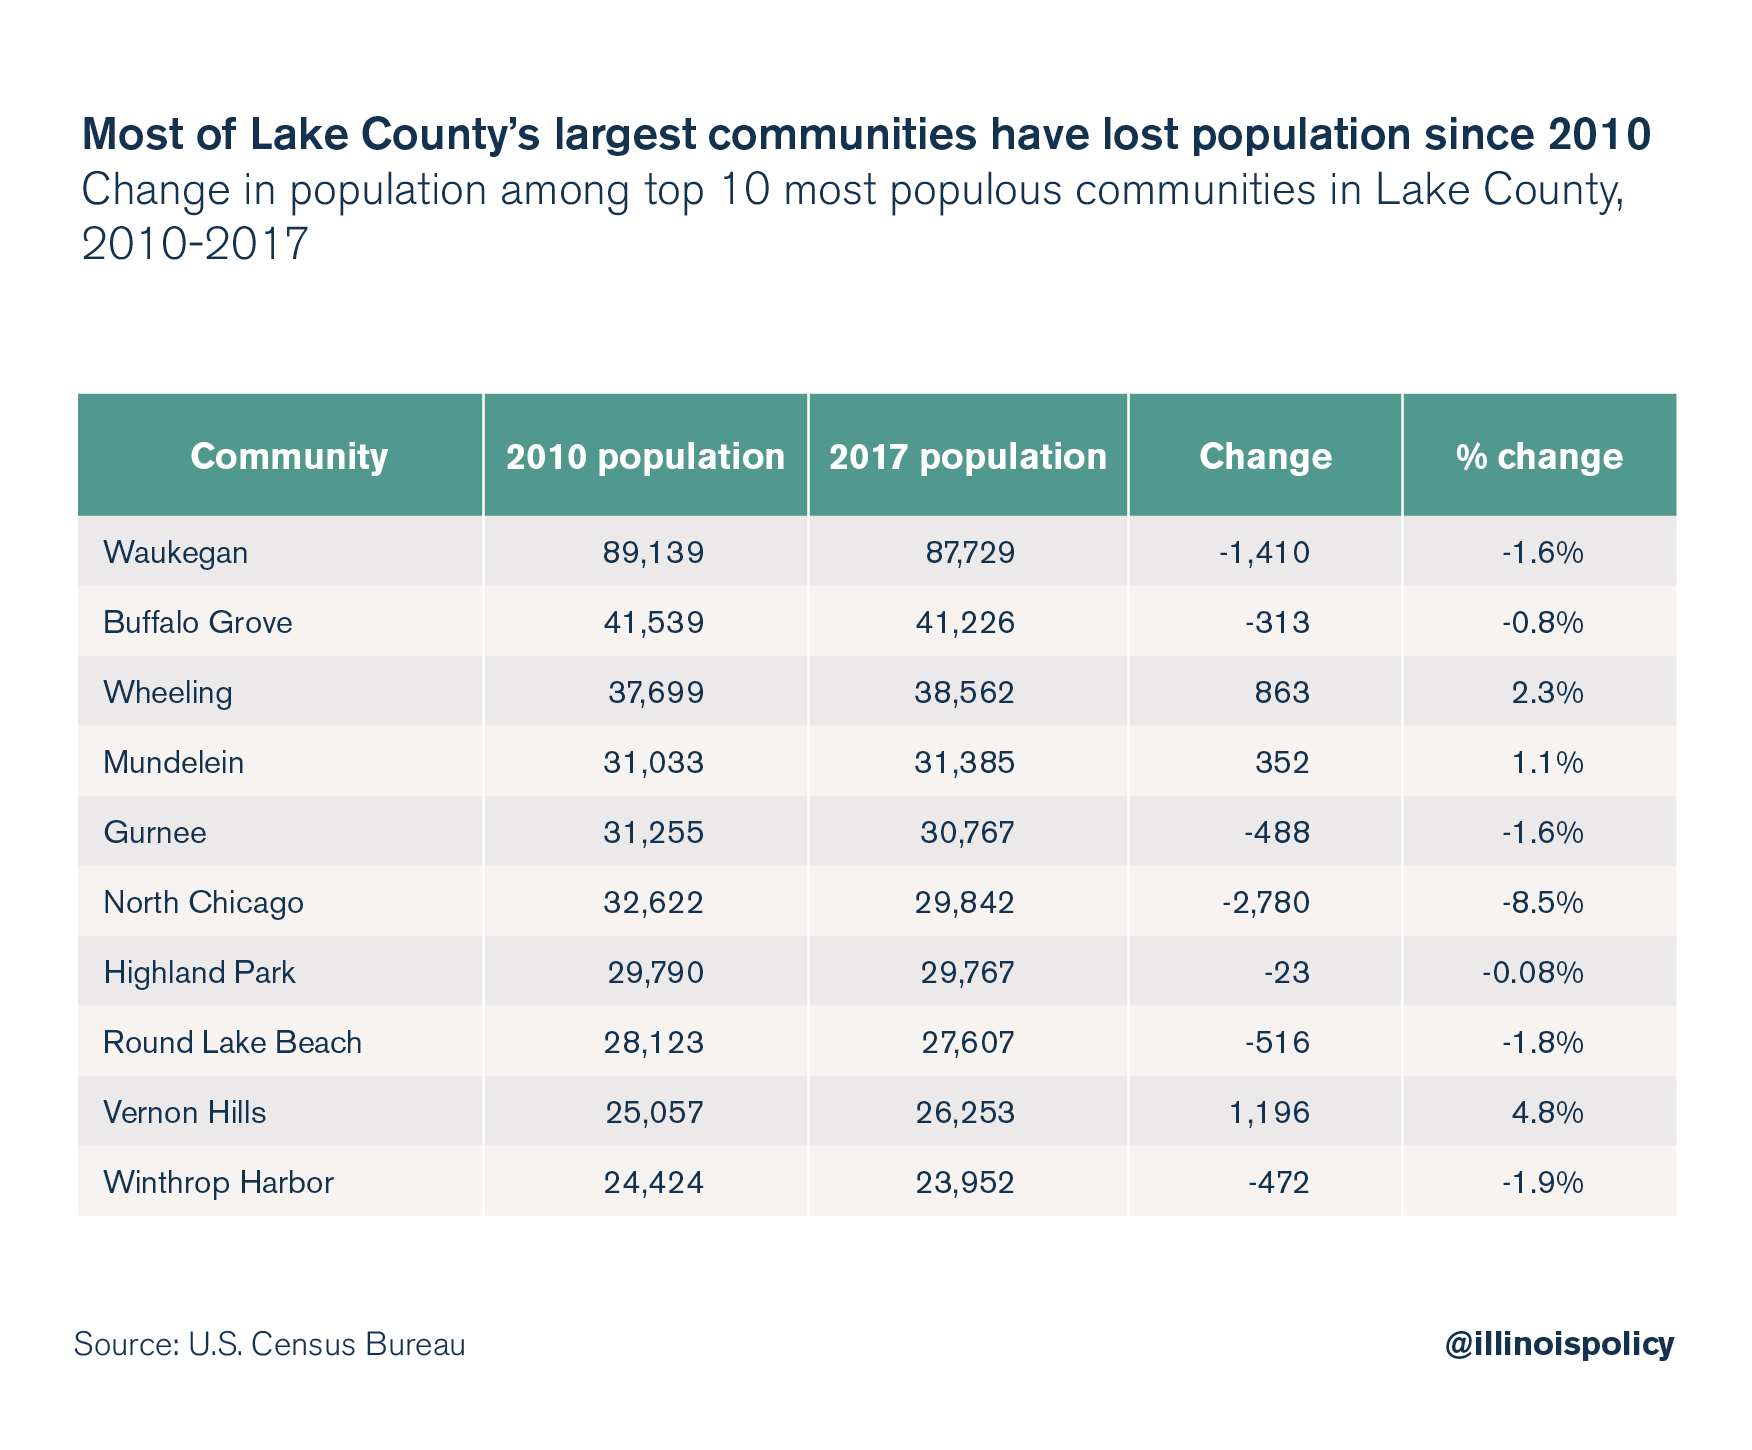 Most of Lake County's largest communities have lost population since 2010